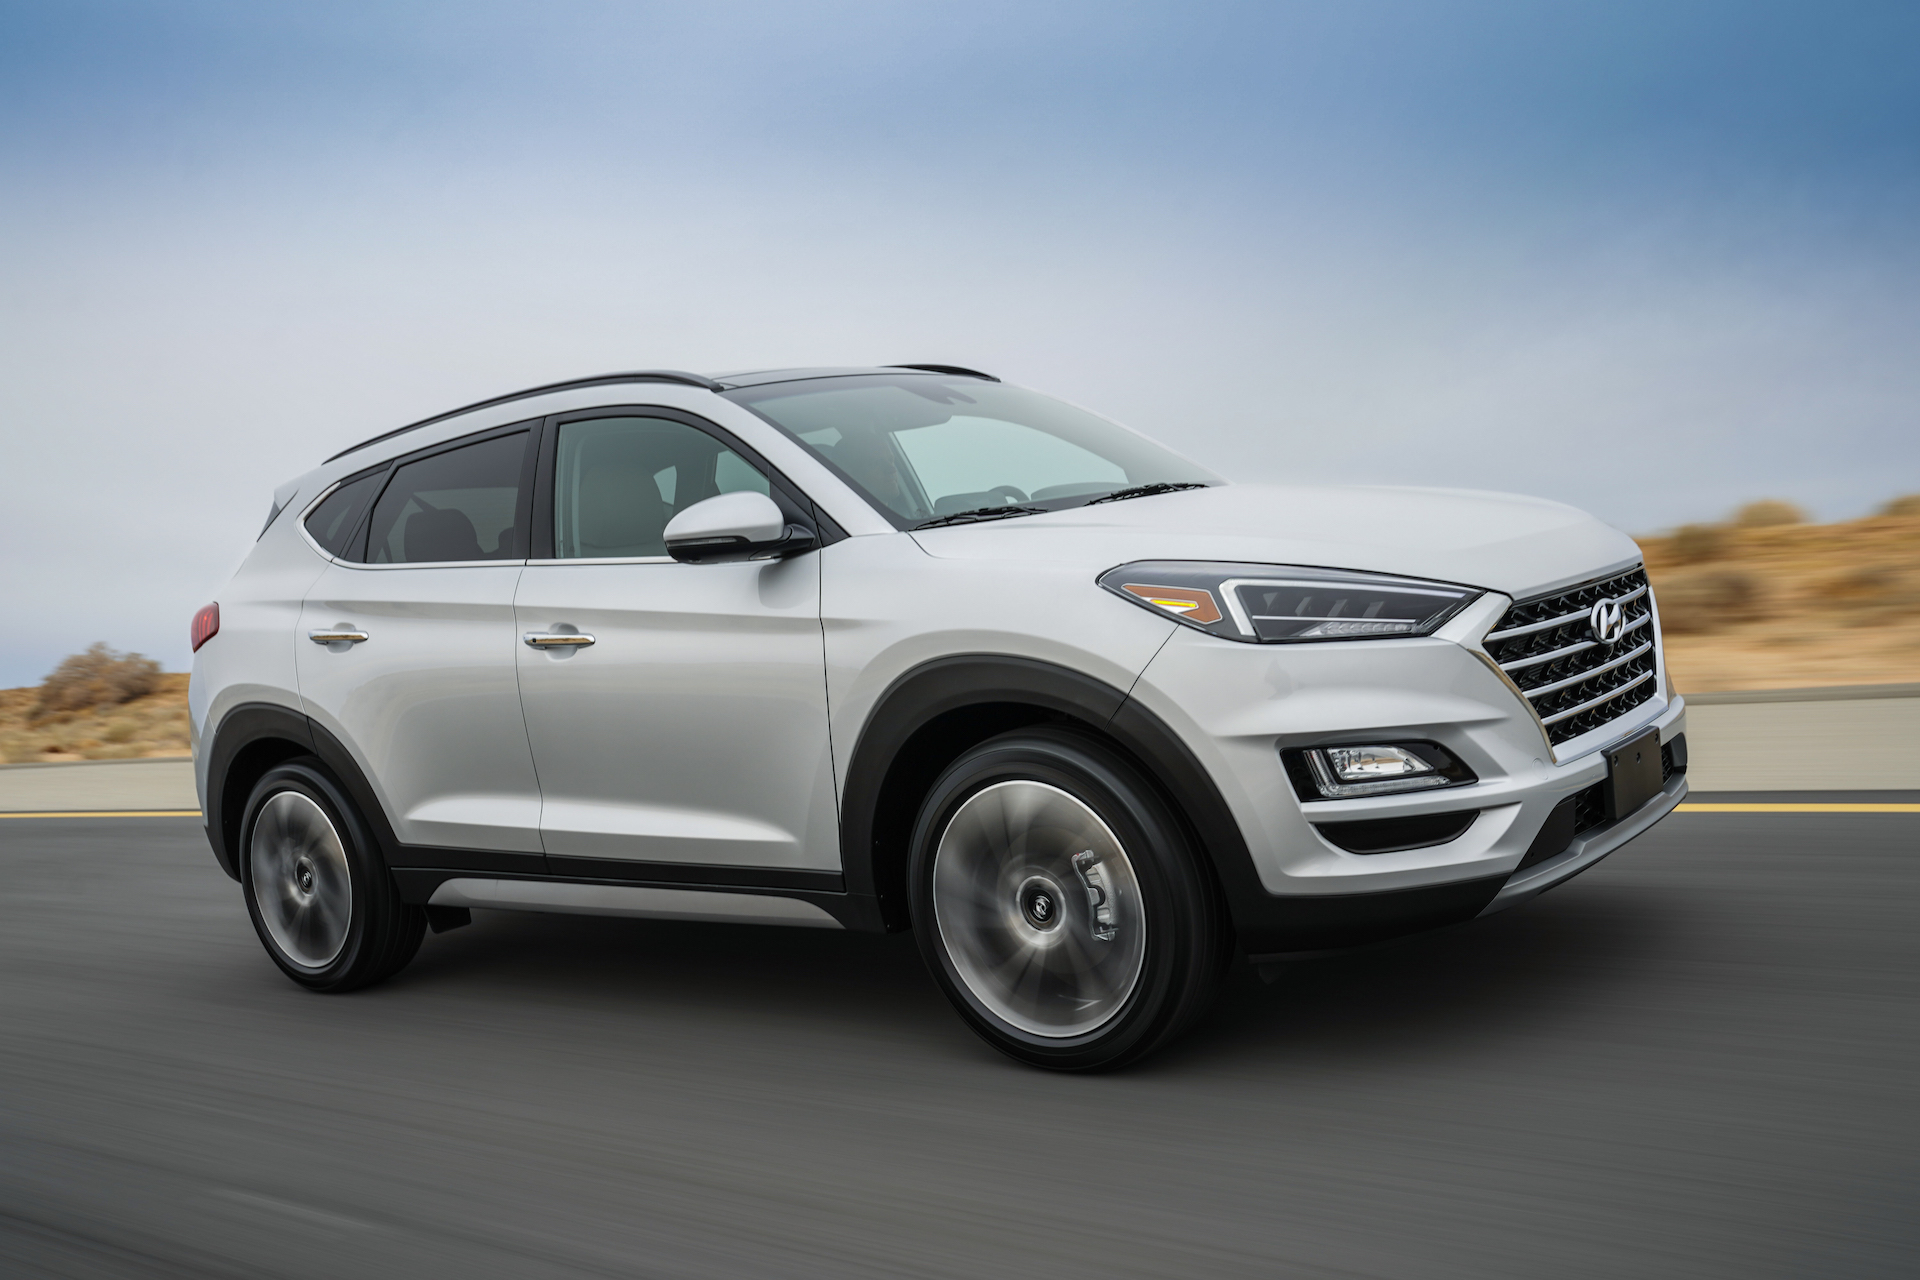 2020 Hyundai Tucson Review.2020 Hyundai Tucson Review Ratings Specs Prices And